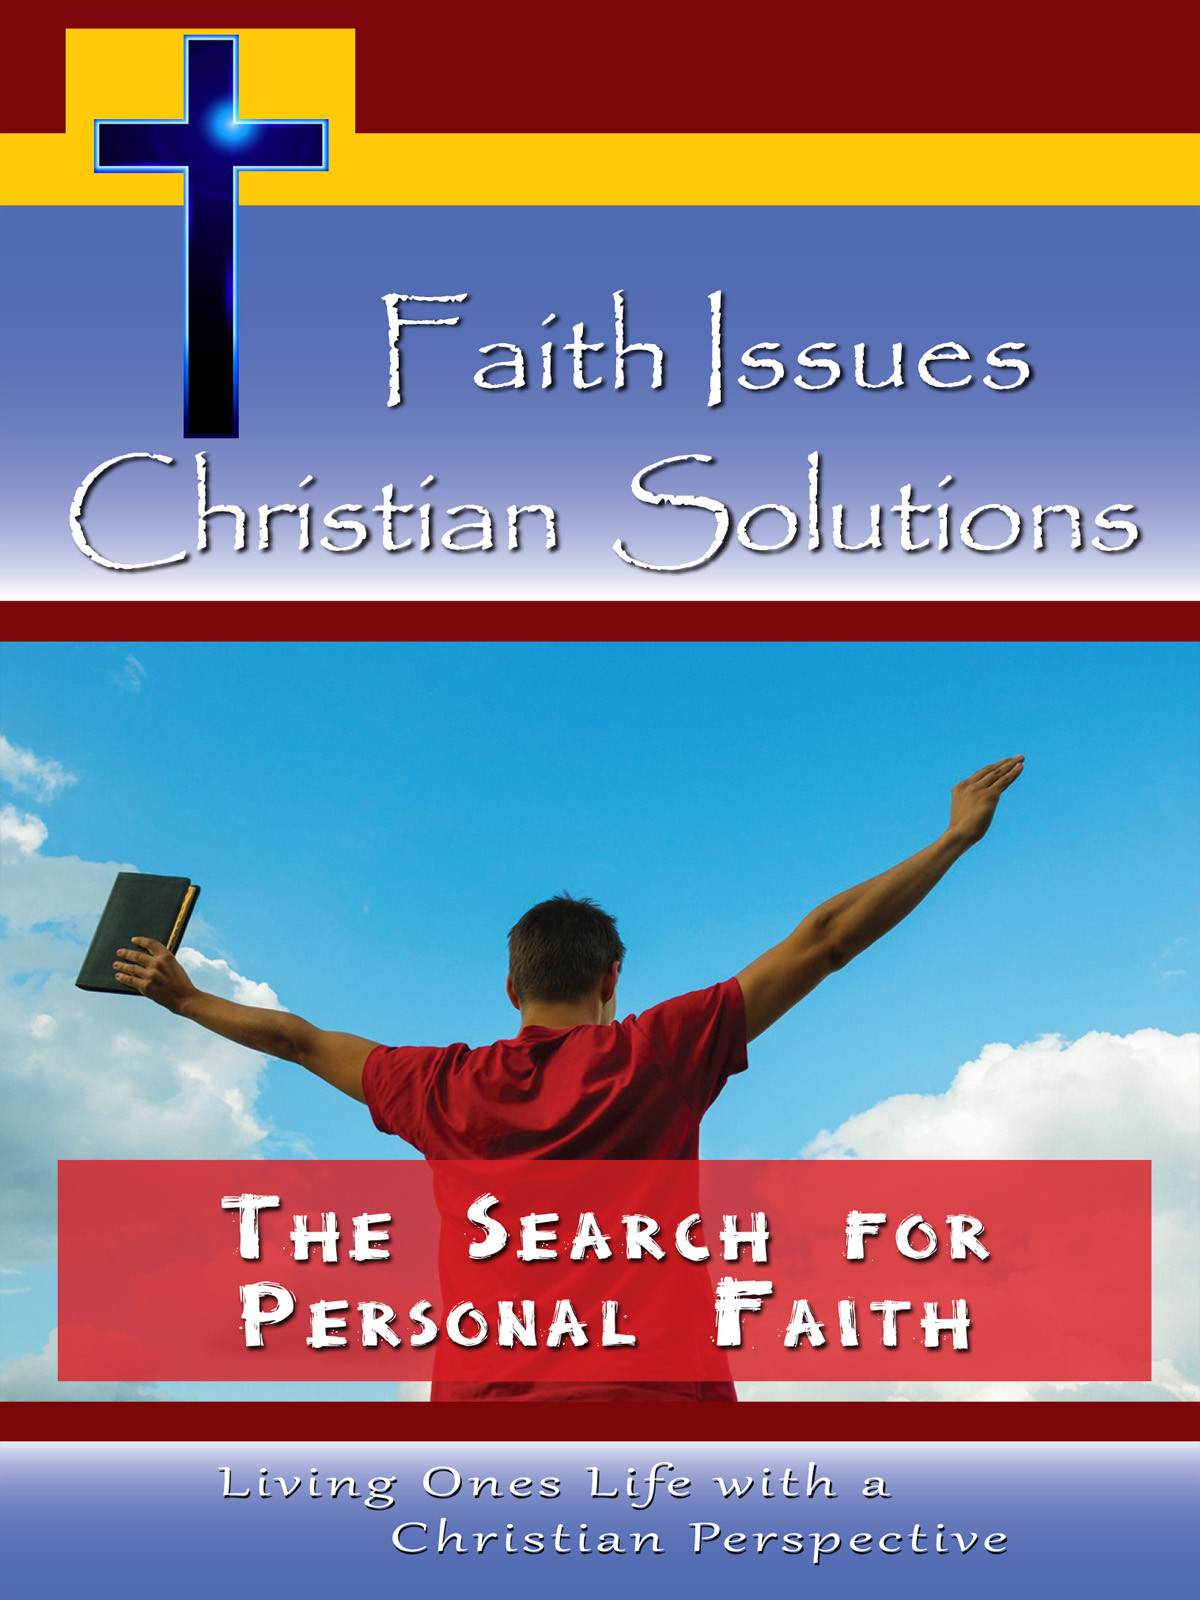 CH10020 - The Search for Personal Faith